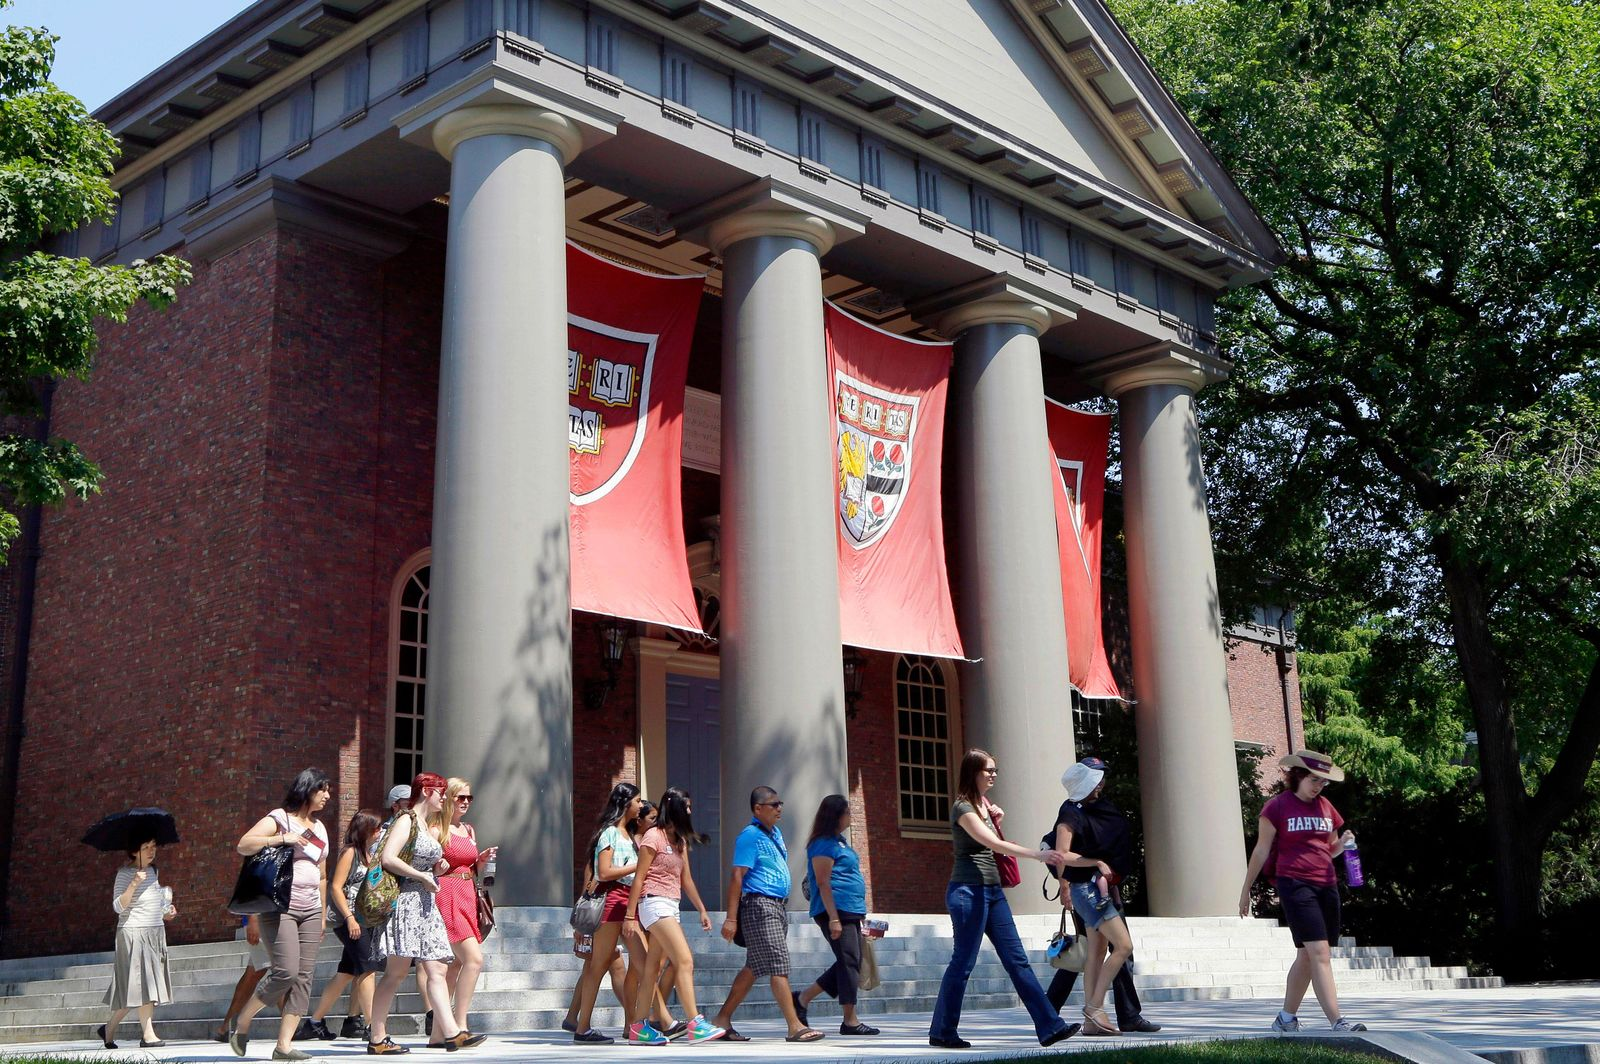 FILE - In this Aug. 30, 2012, file photo, a tour group walks through the campus of Harvard University in Cambridge, Mass. (AP Photo/Elise Amendola, File)